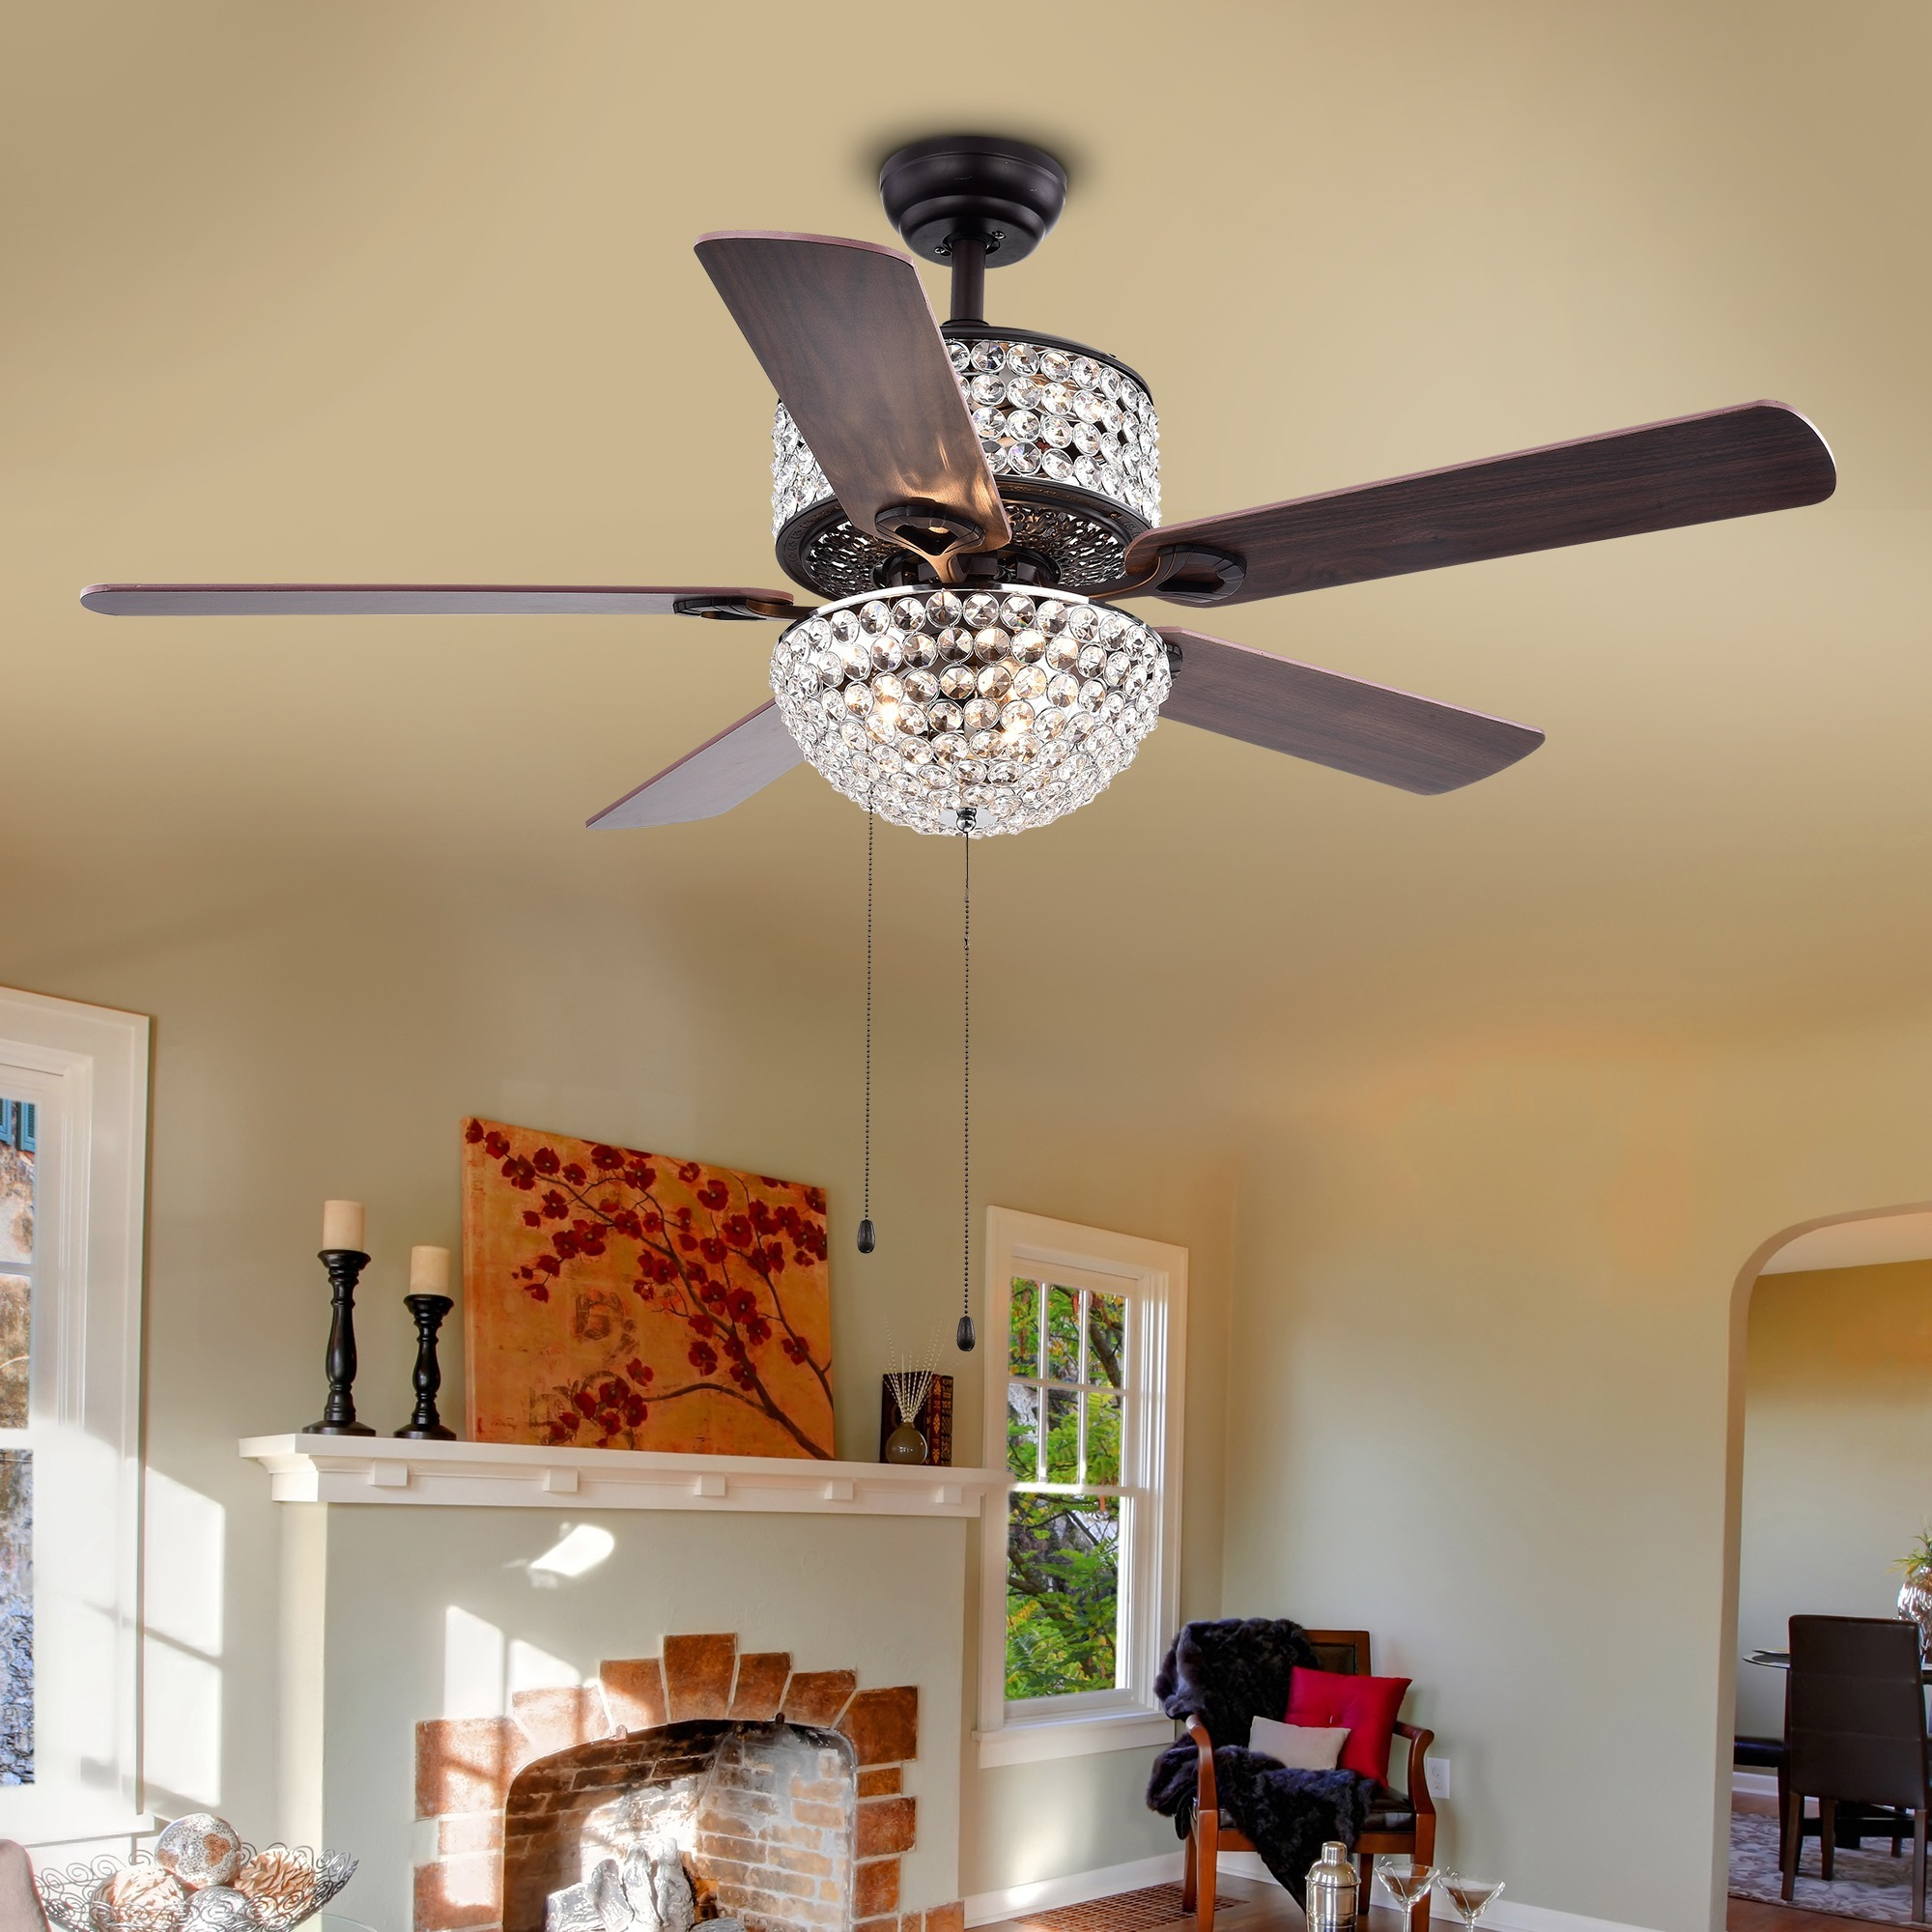 Laure Crystal 6 light Crystal 5 blade 52 inch Ceiling Fan Free